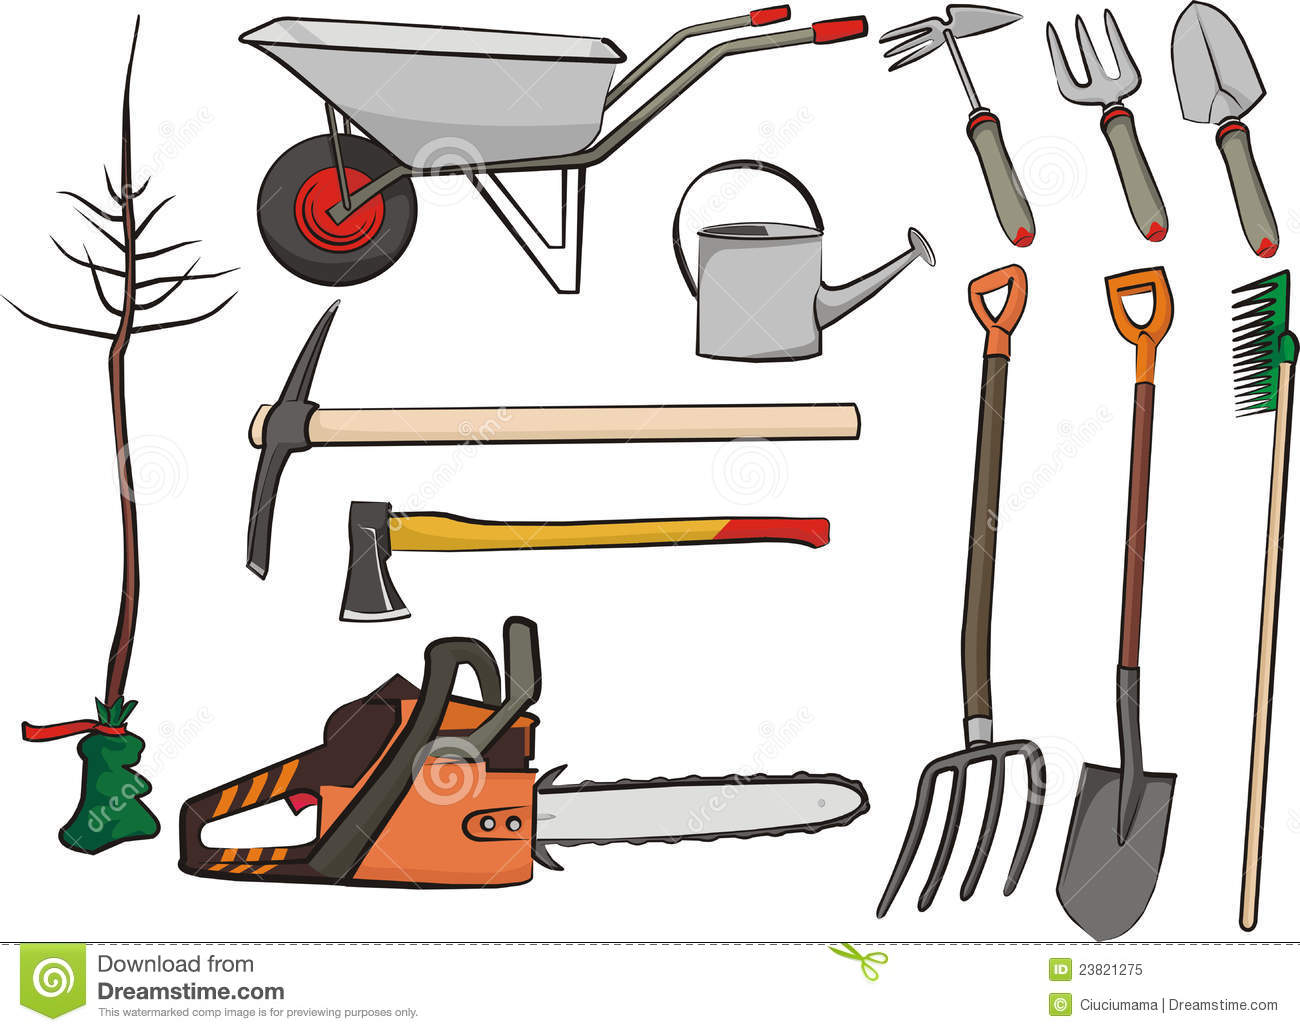 Gardening tools royalty free stock photo image 23821275 for Gardening tools for weeding